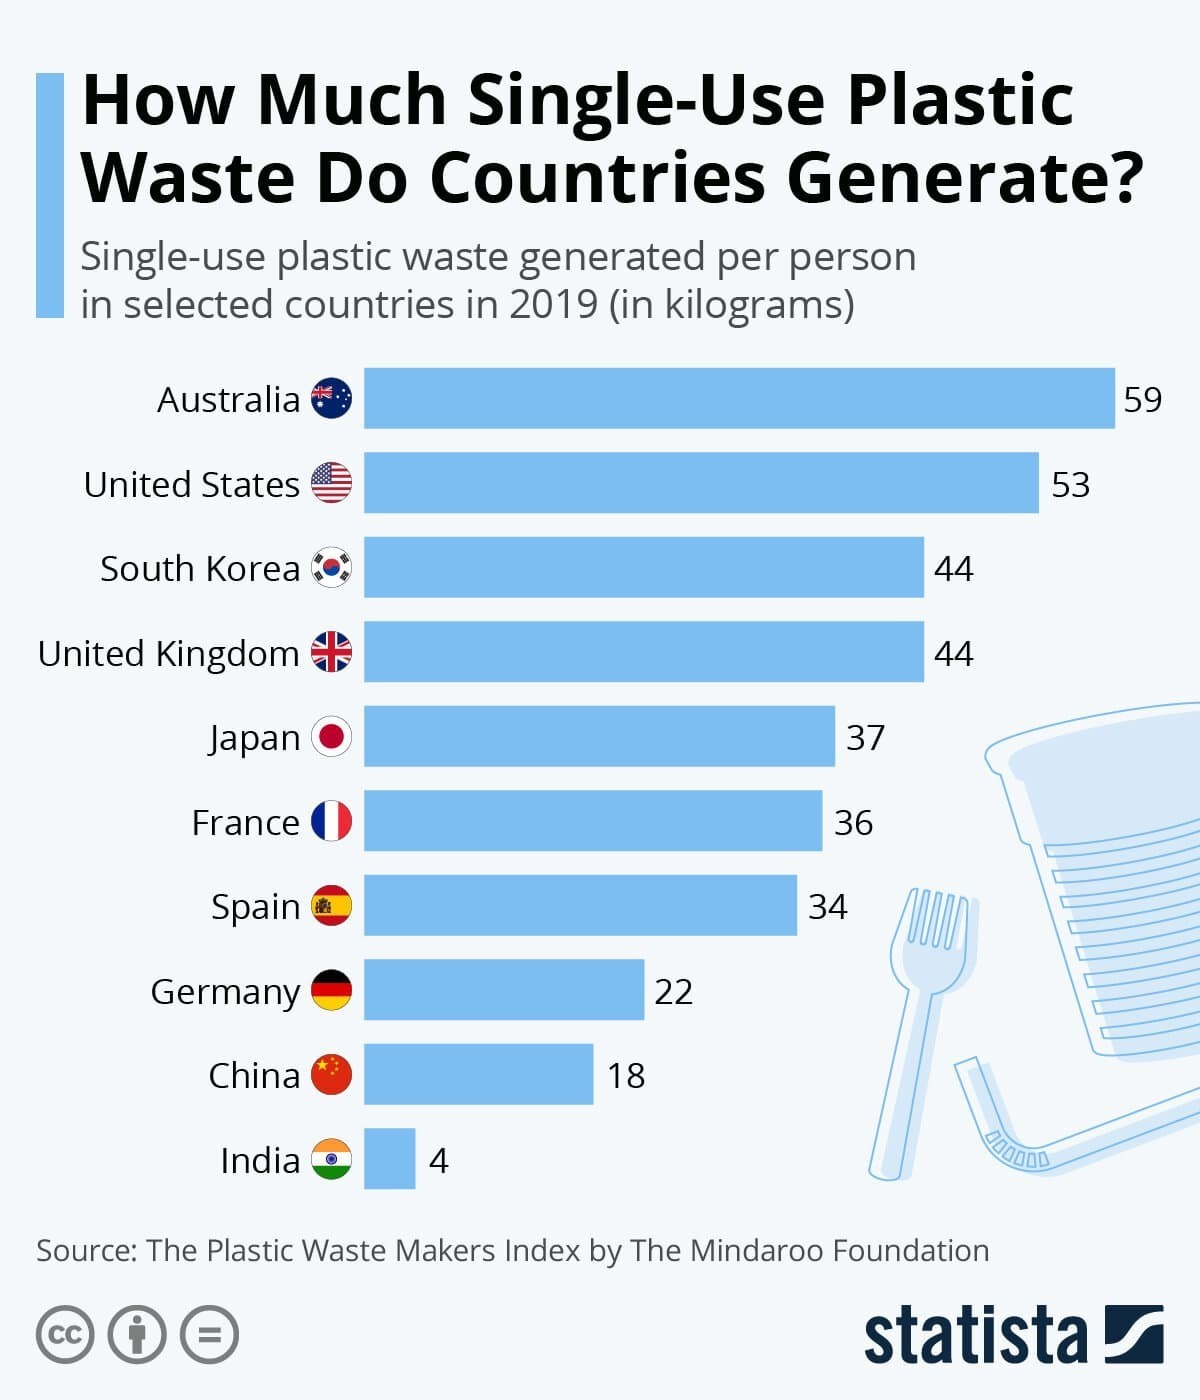 How Much Single-Use Plastic Waste Do Countries Generate?